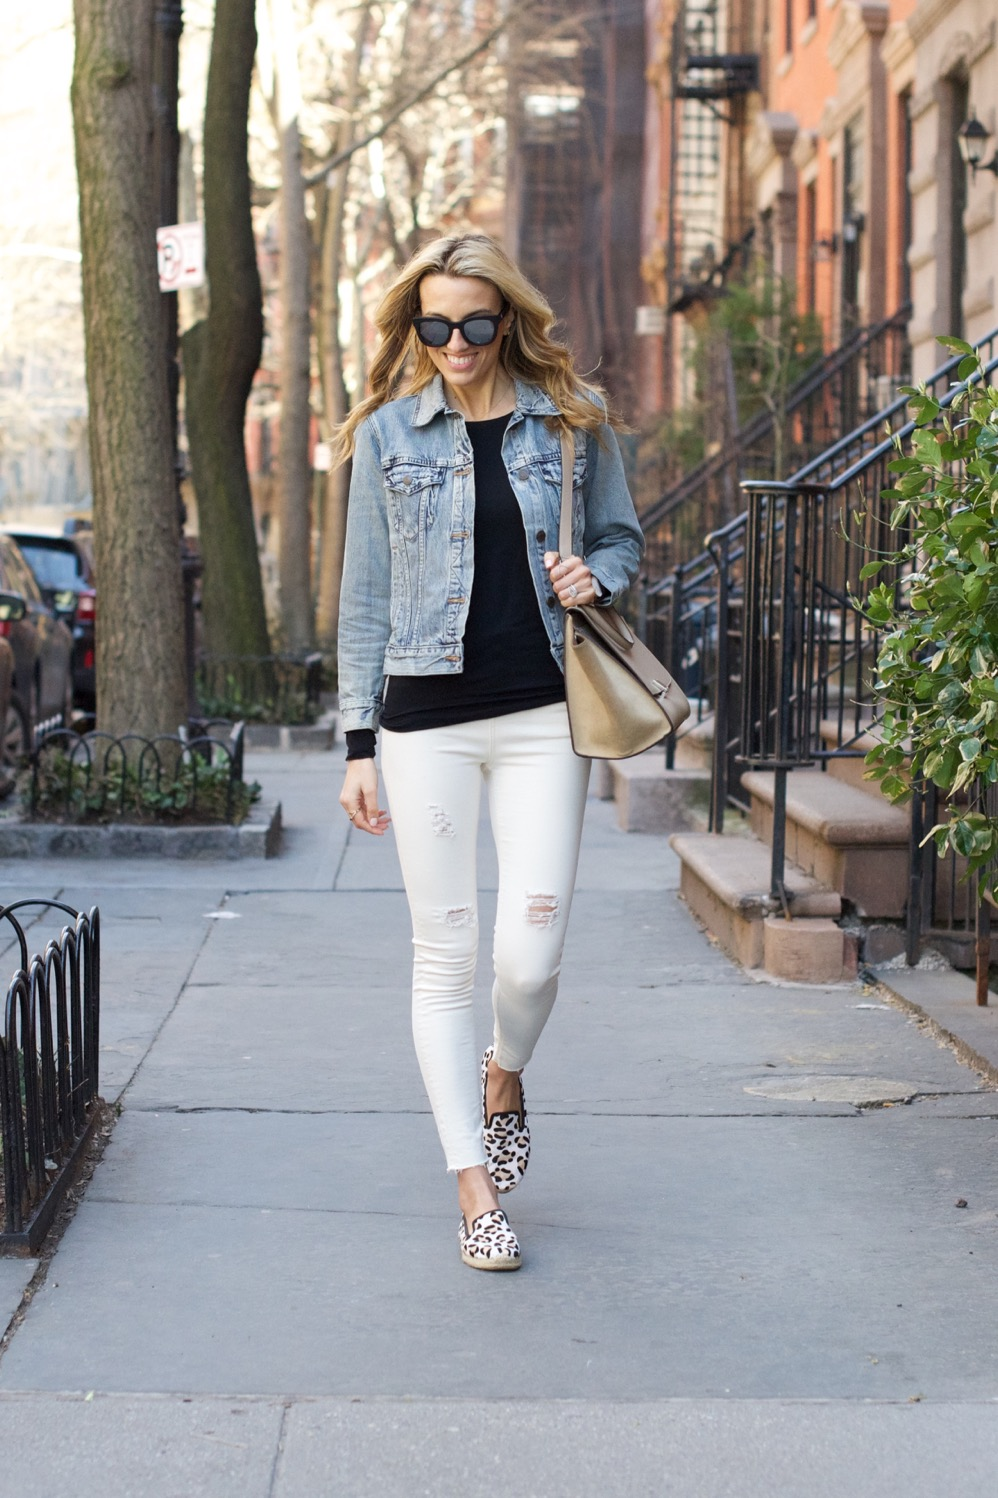 Topshop jeans, J Crew denim jacket - 13 of 13